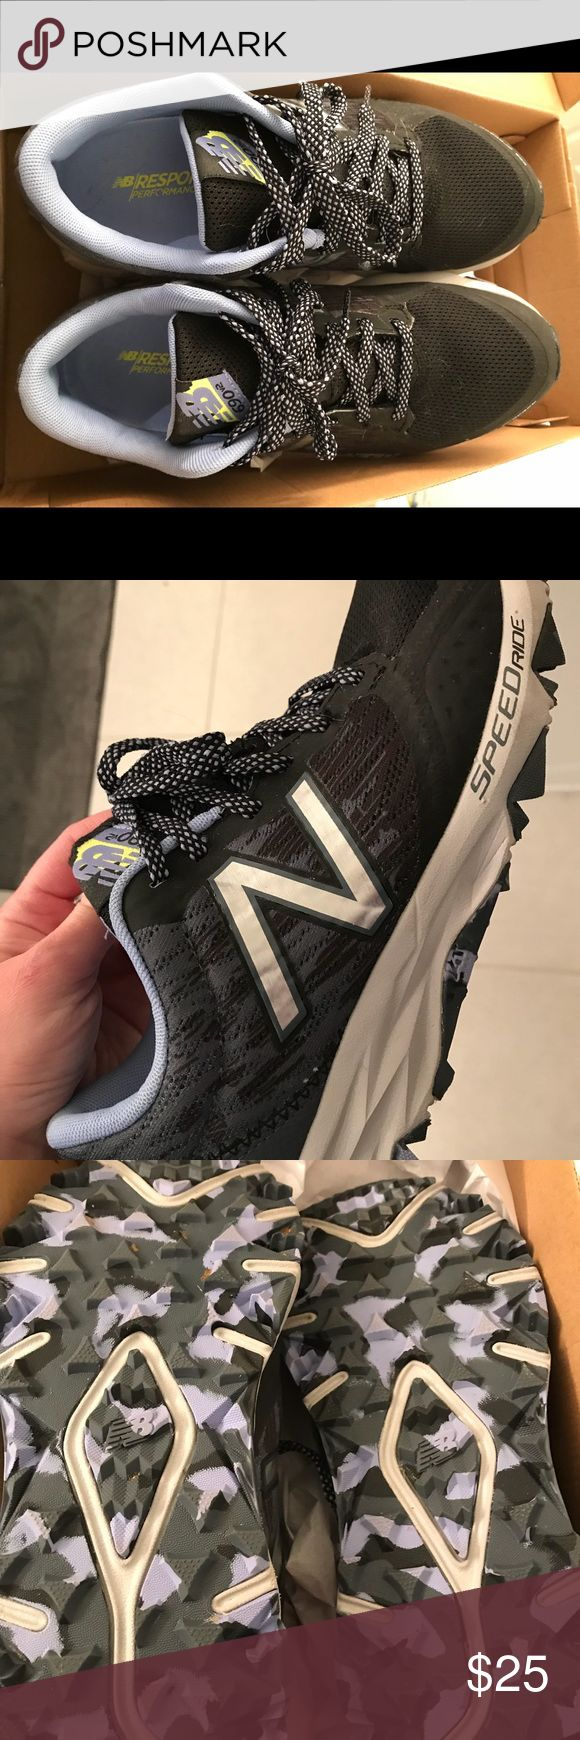 New balance trail running sneakers women's size 8 New balance wt690lb2 trail running women's size 8 m sneakers. Only worn 5 times!! Like new New Balance Shoes Athletic Shoes